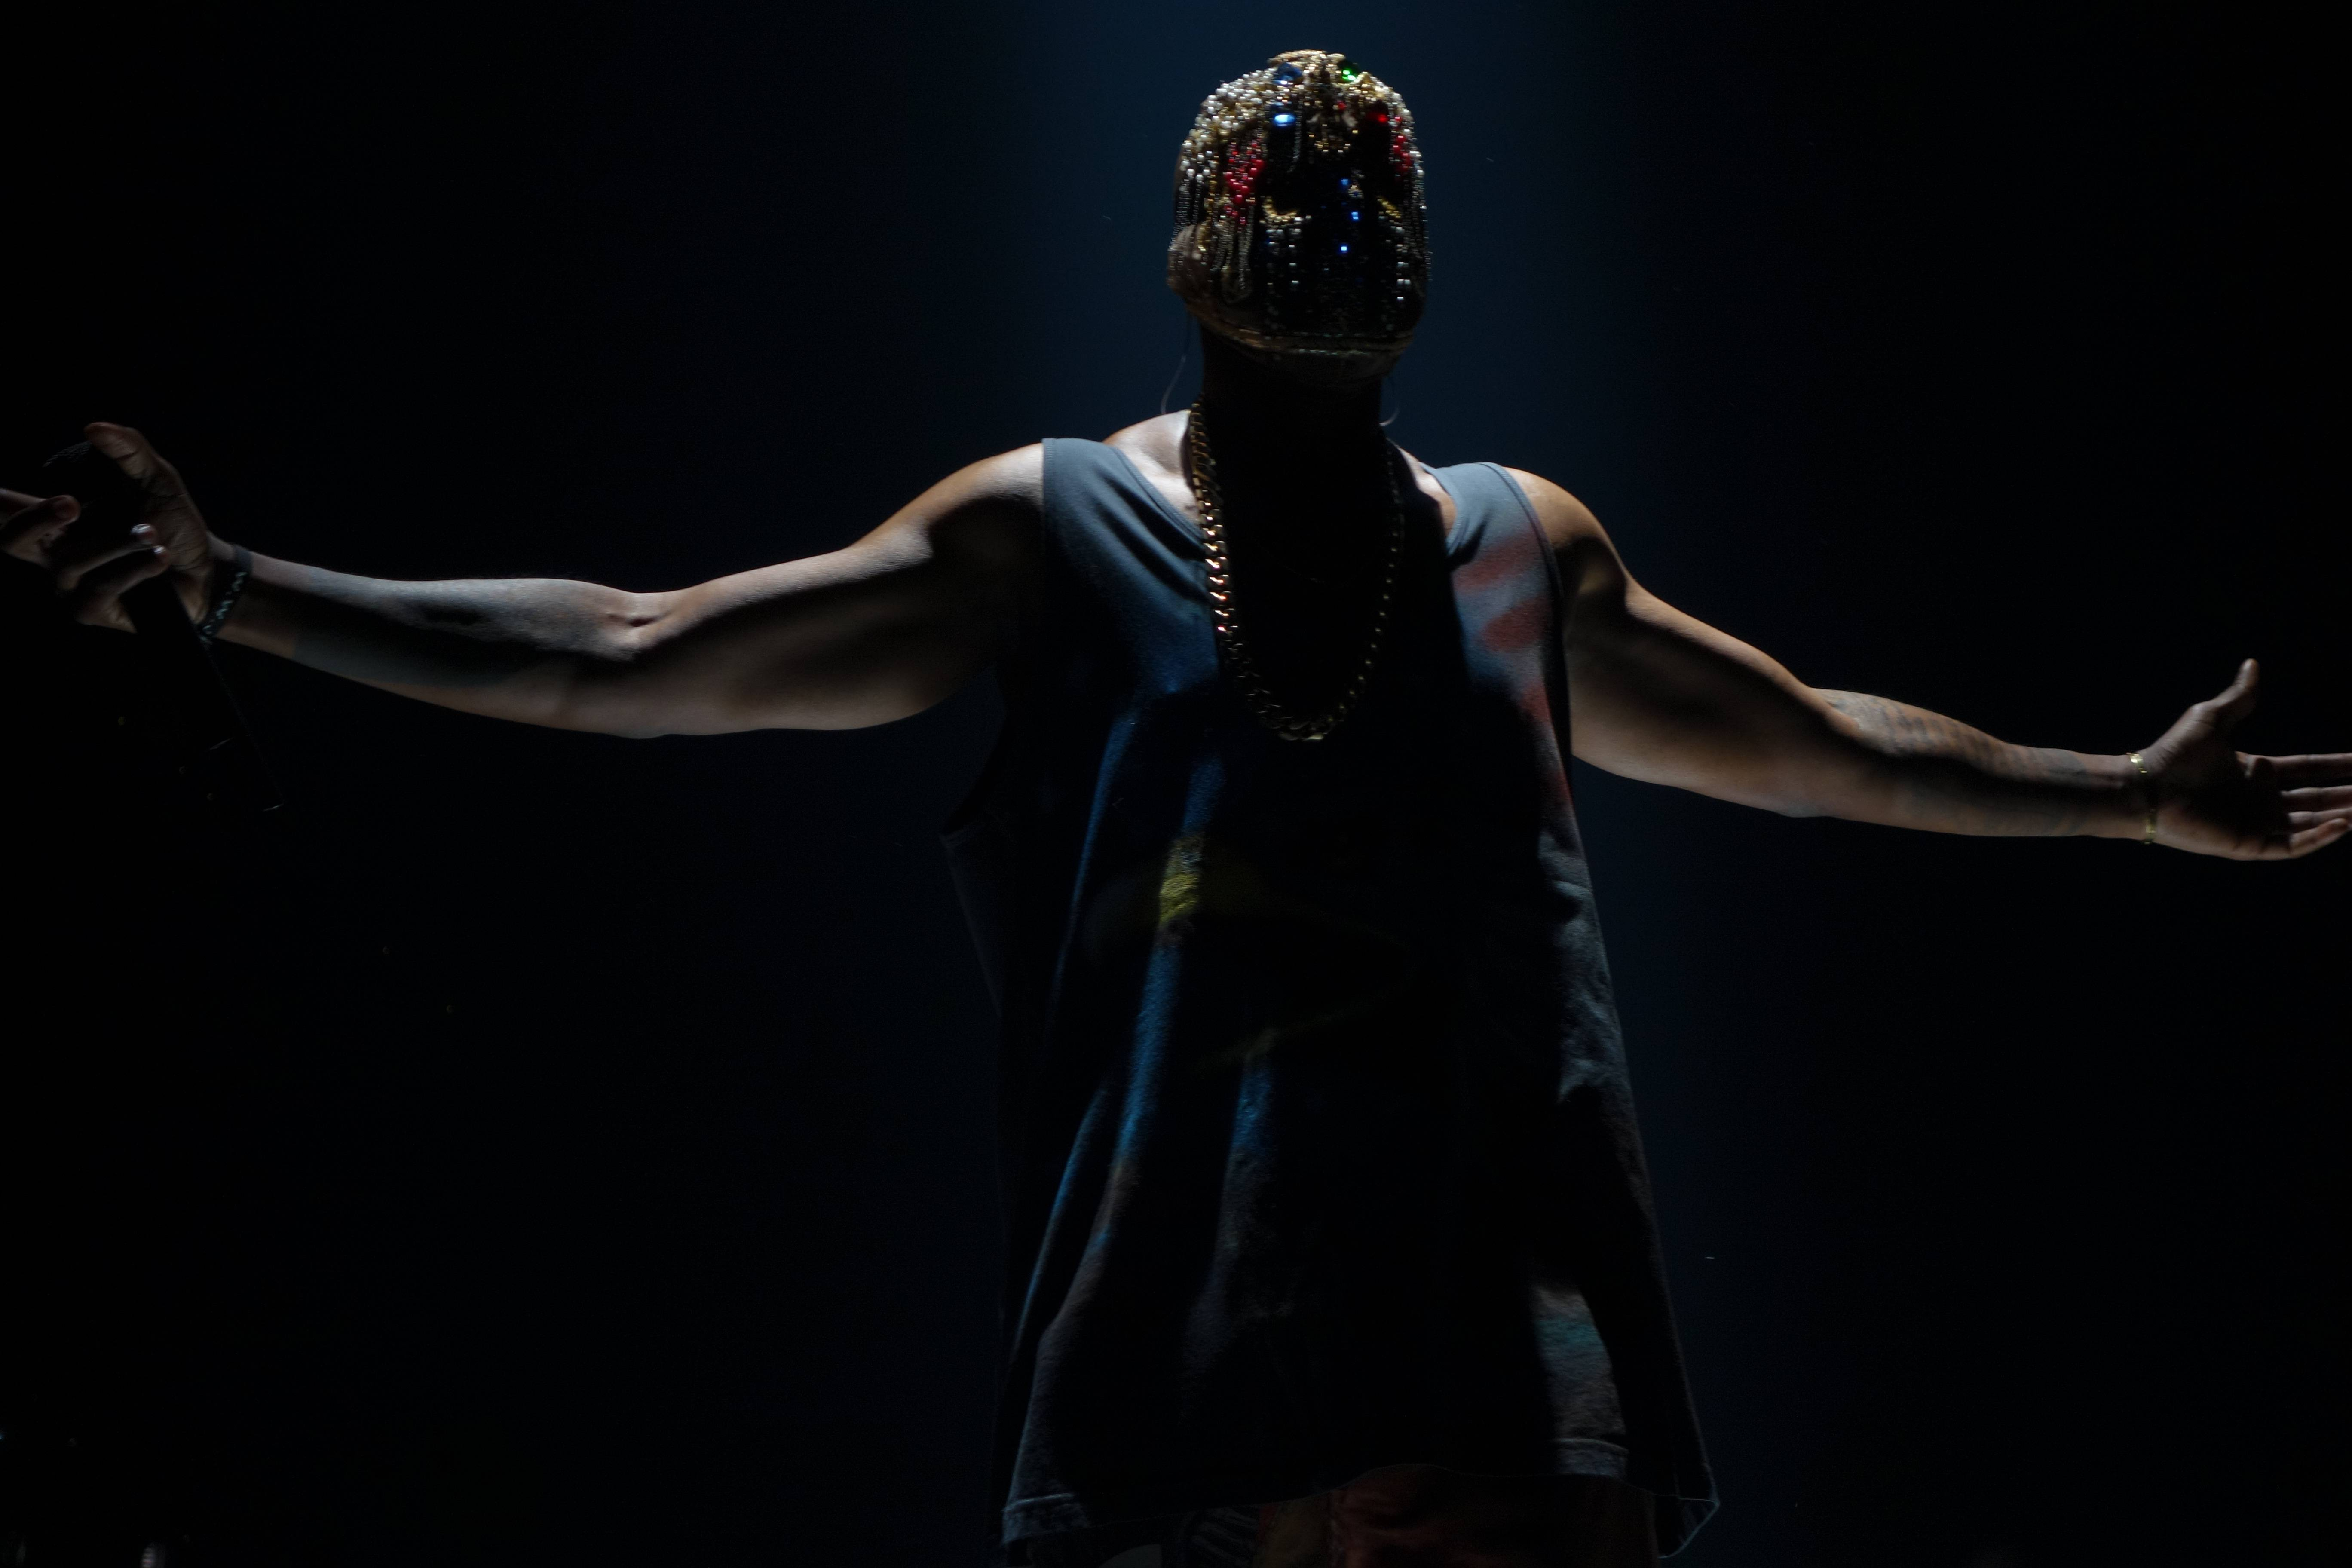 kanye west wallpapers high resolution and quality download